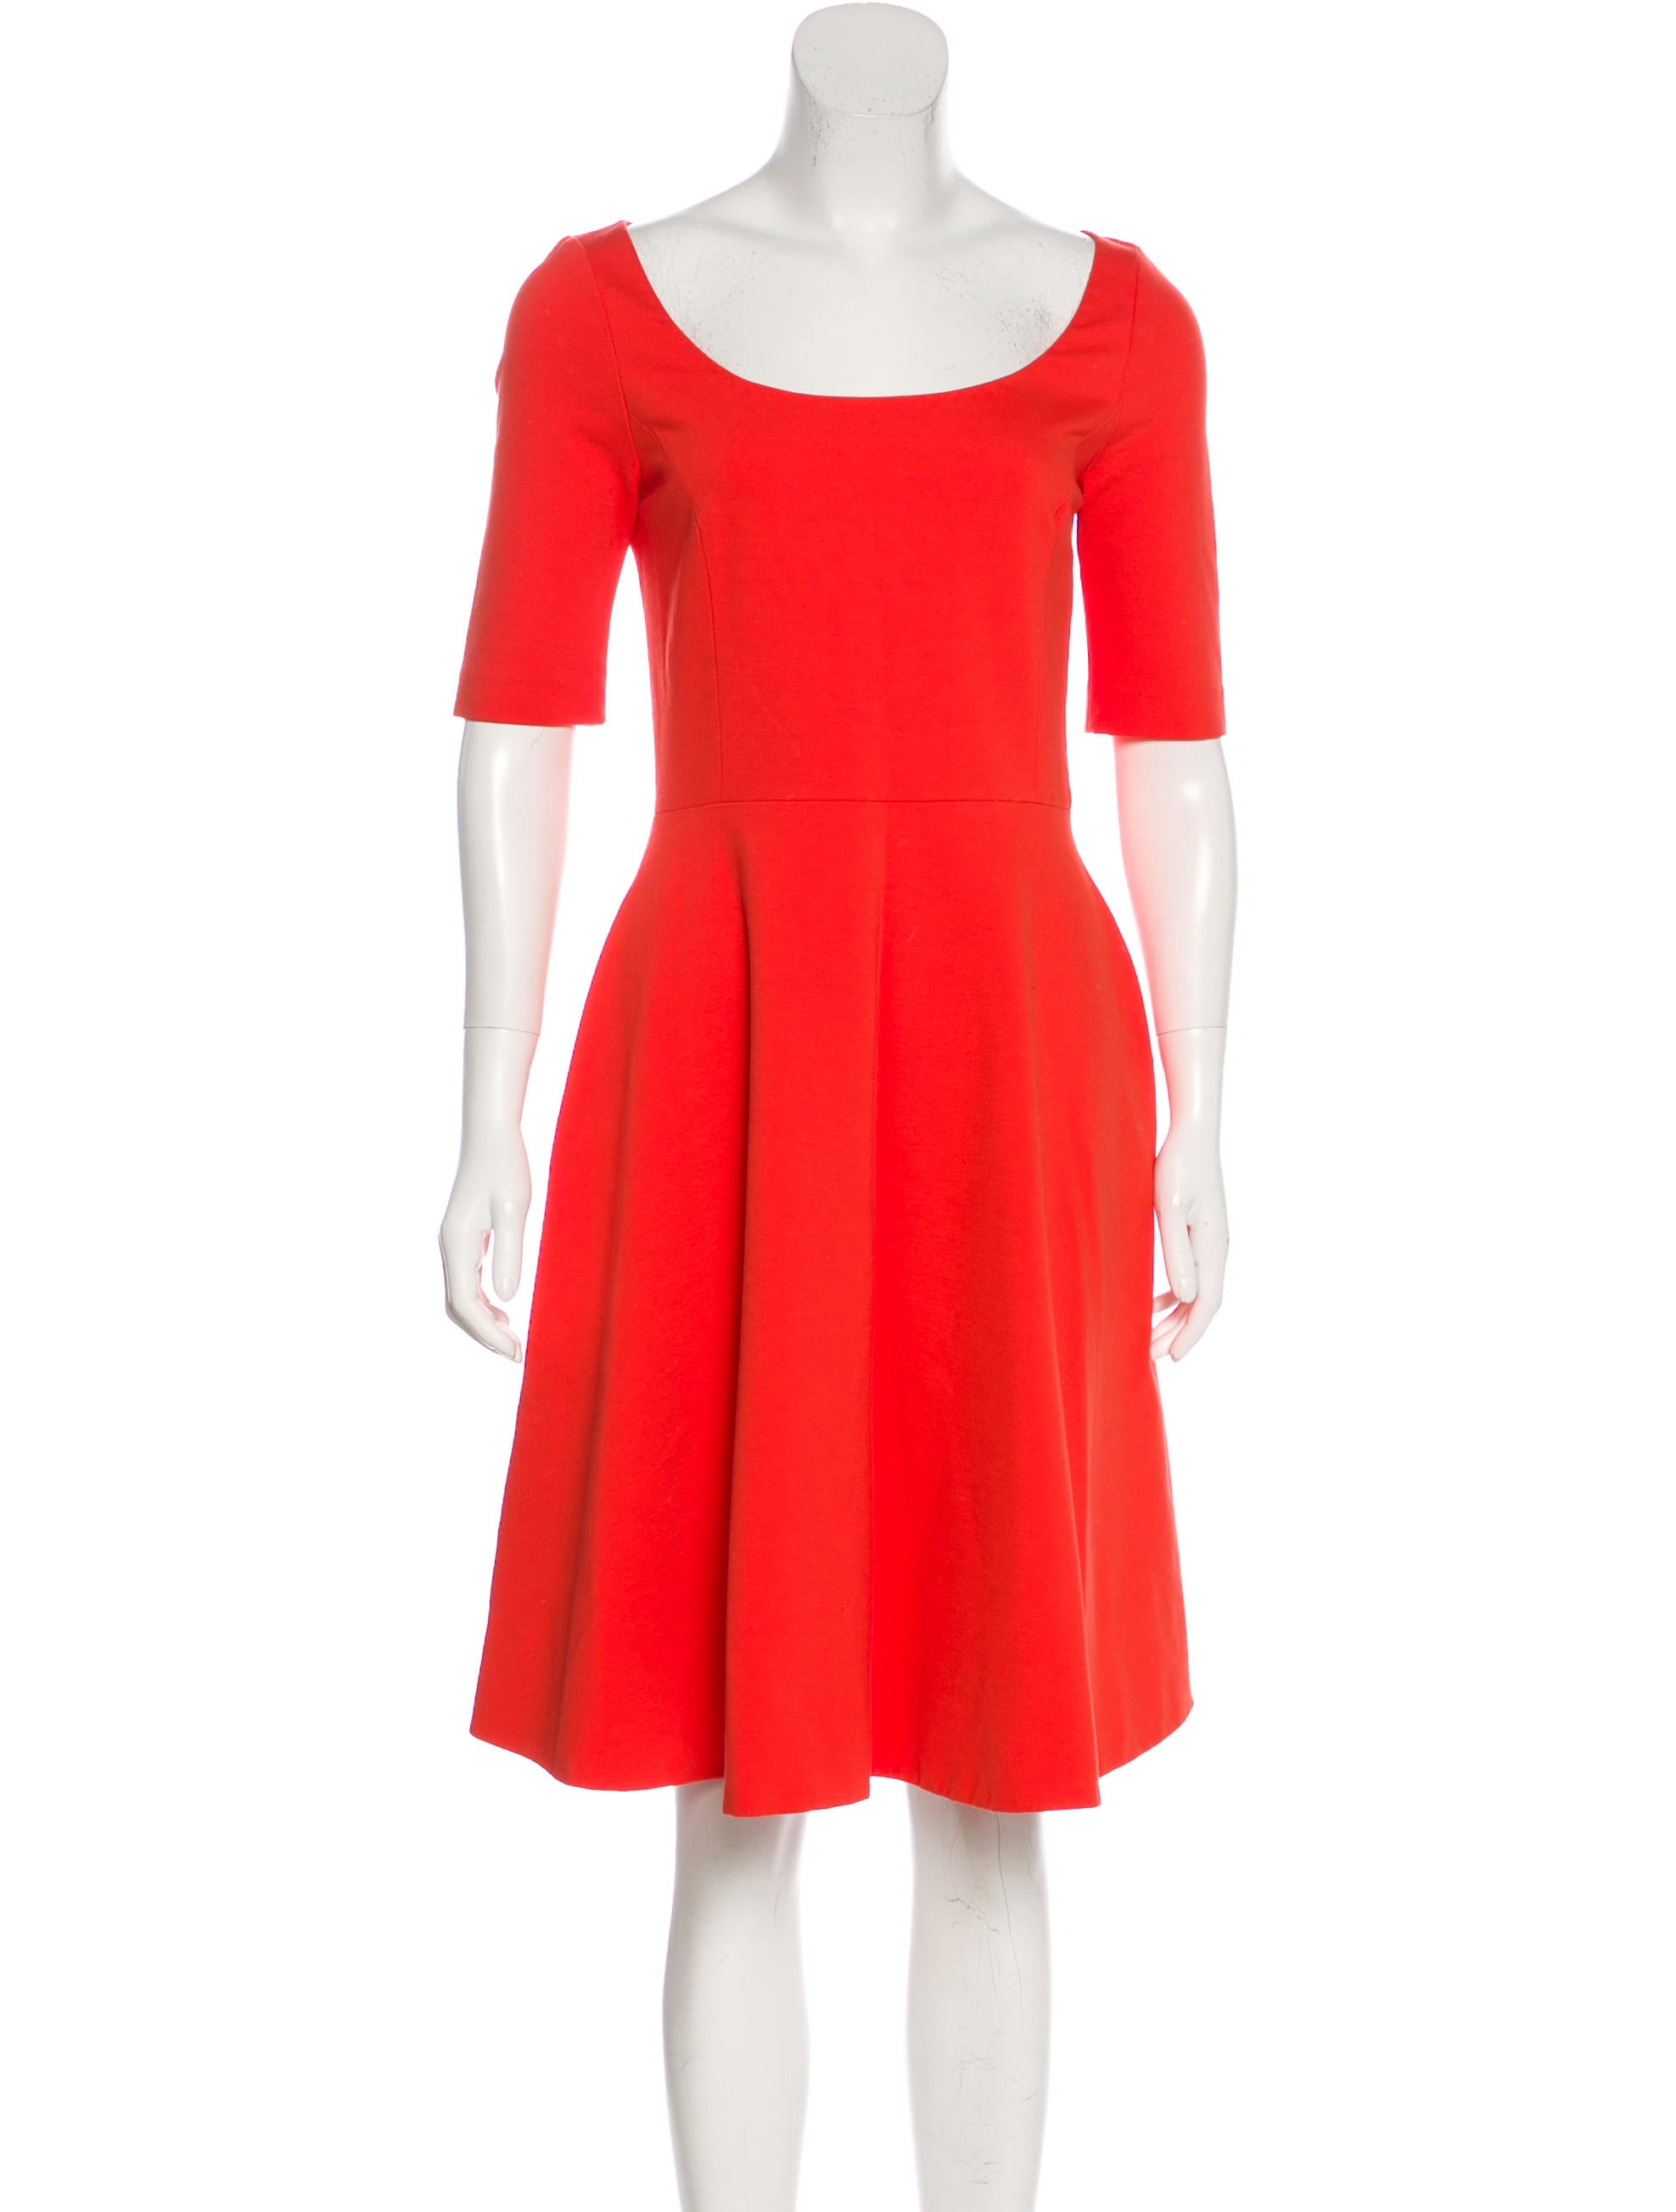 Kate Spade New York Knee-Length A-Line Dress Free Shipping Big Discount Nice Comfortable For Sale Cheap Footlocker Outlet Reliable nAHzF2DxP